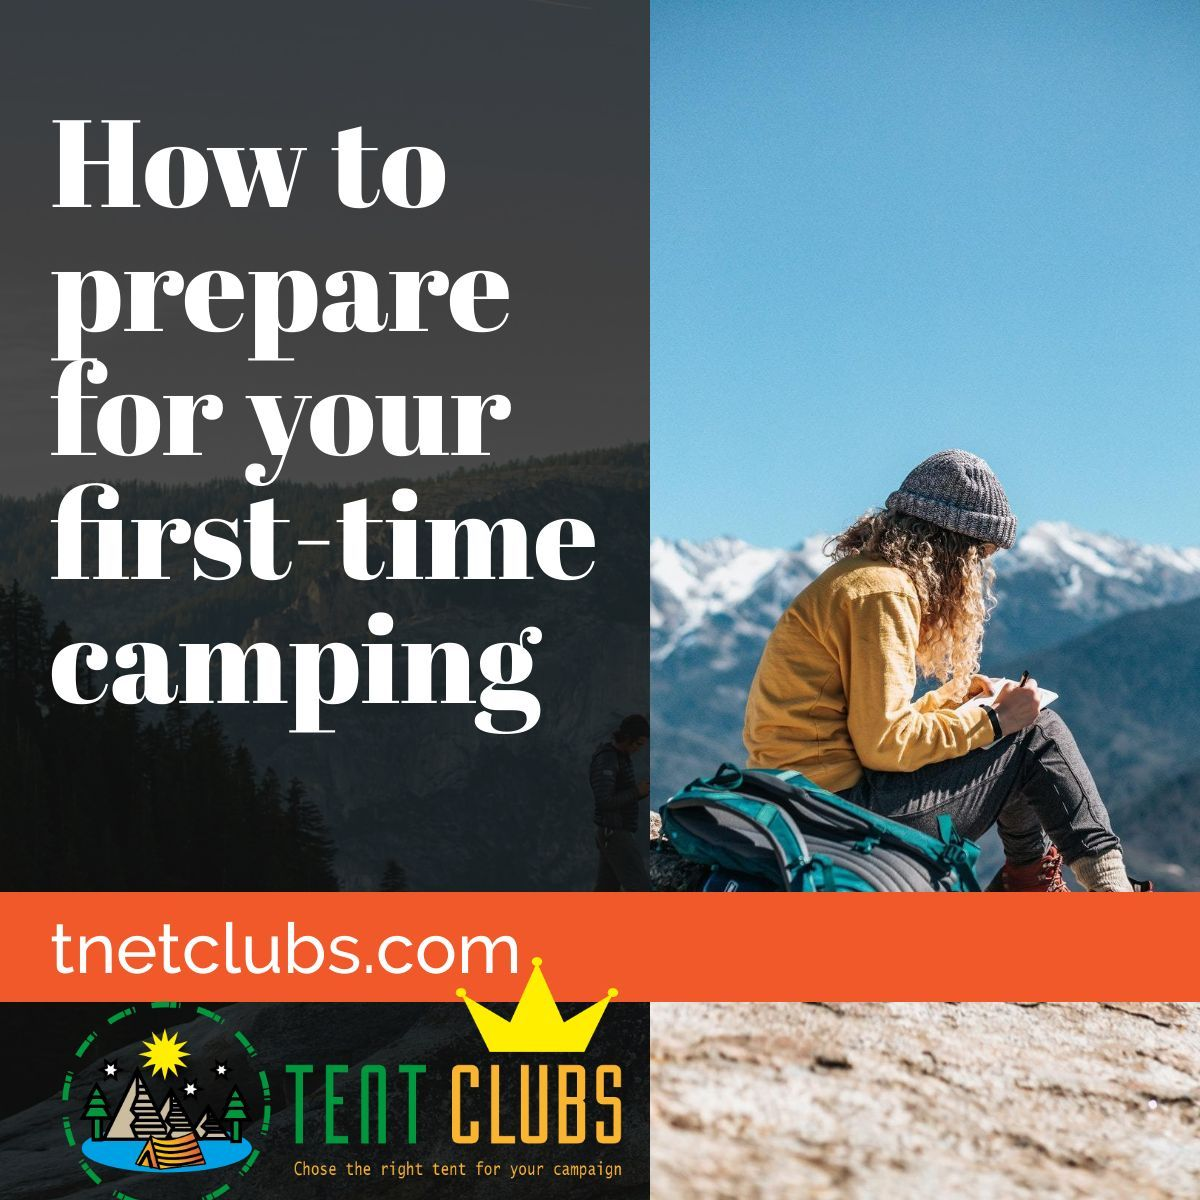 How-to-prepare-for-your-first-time-camping-compressor